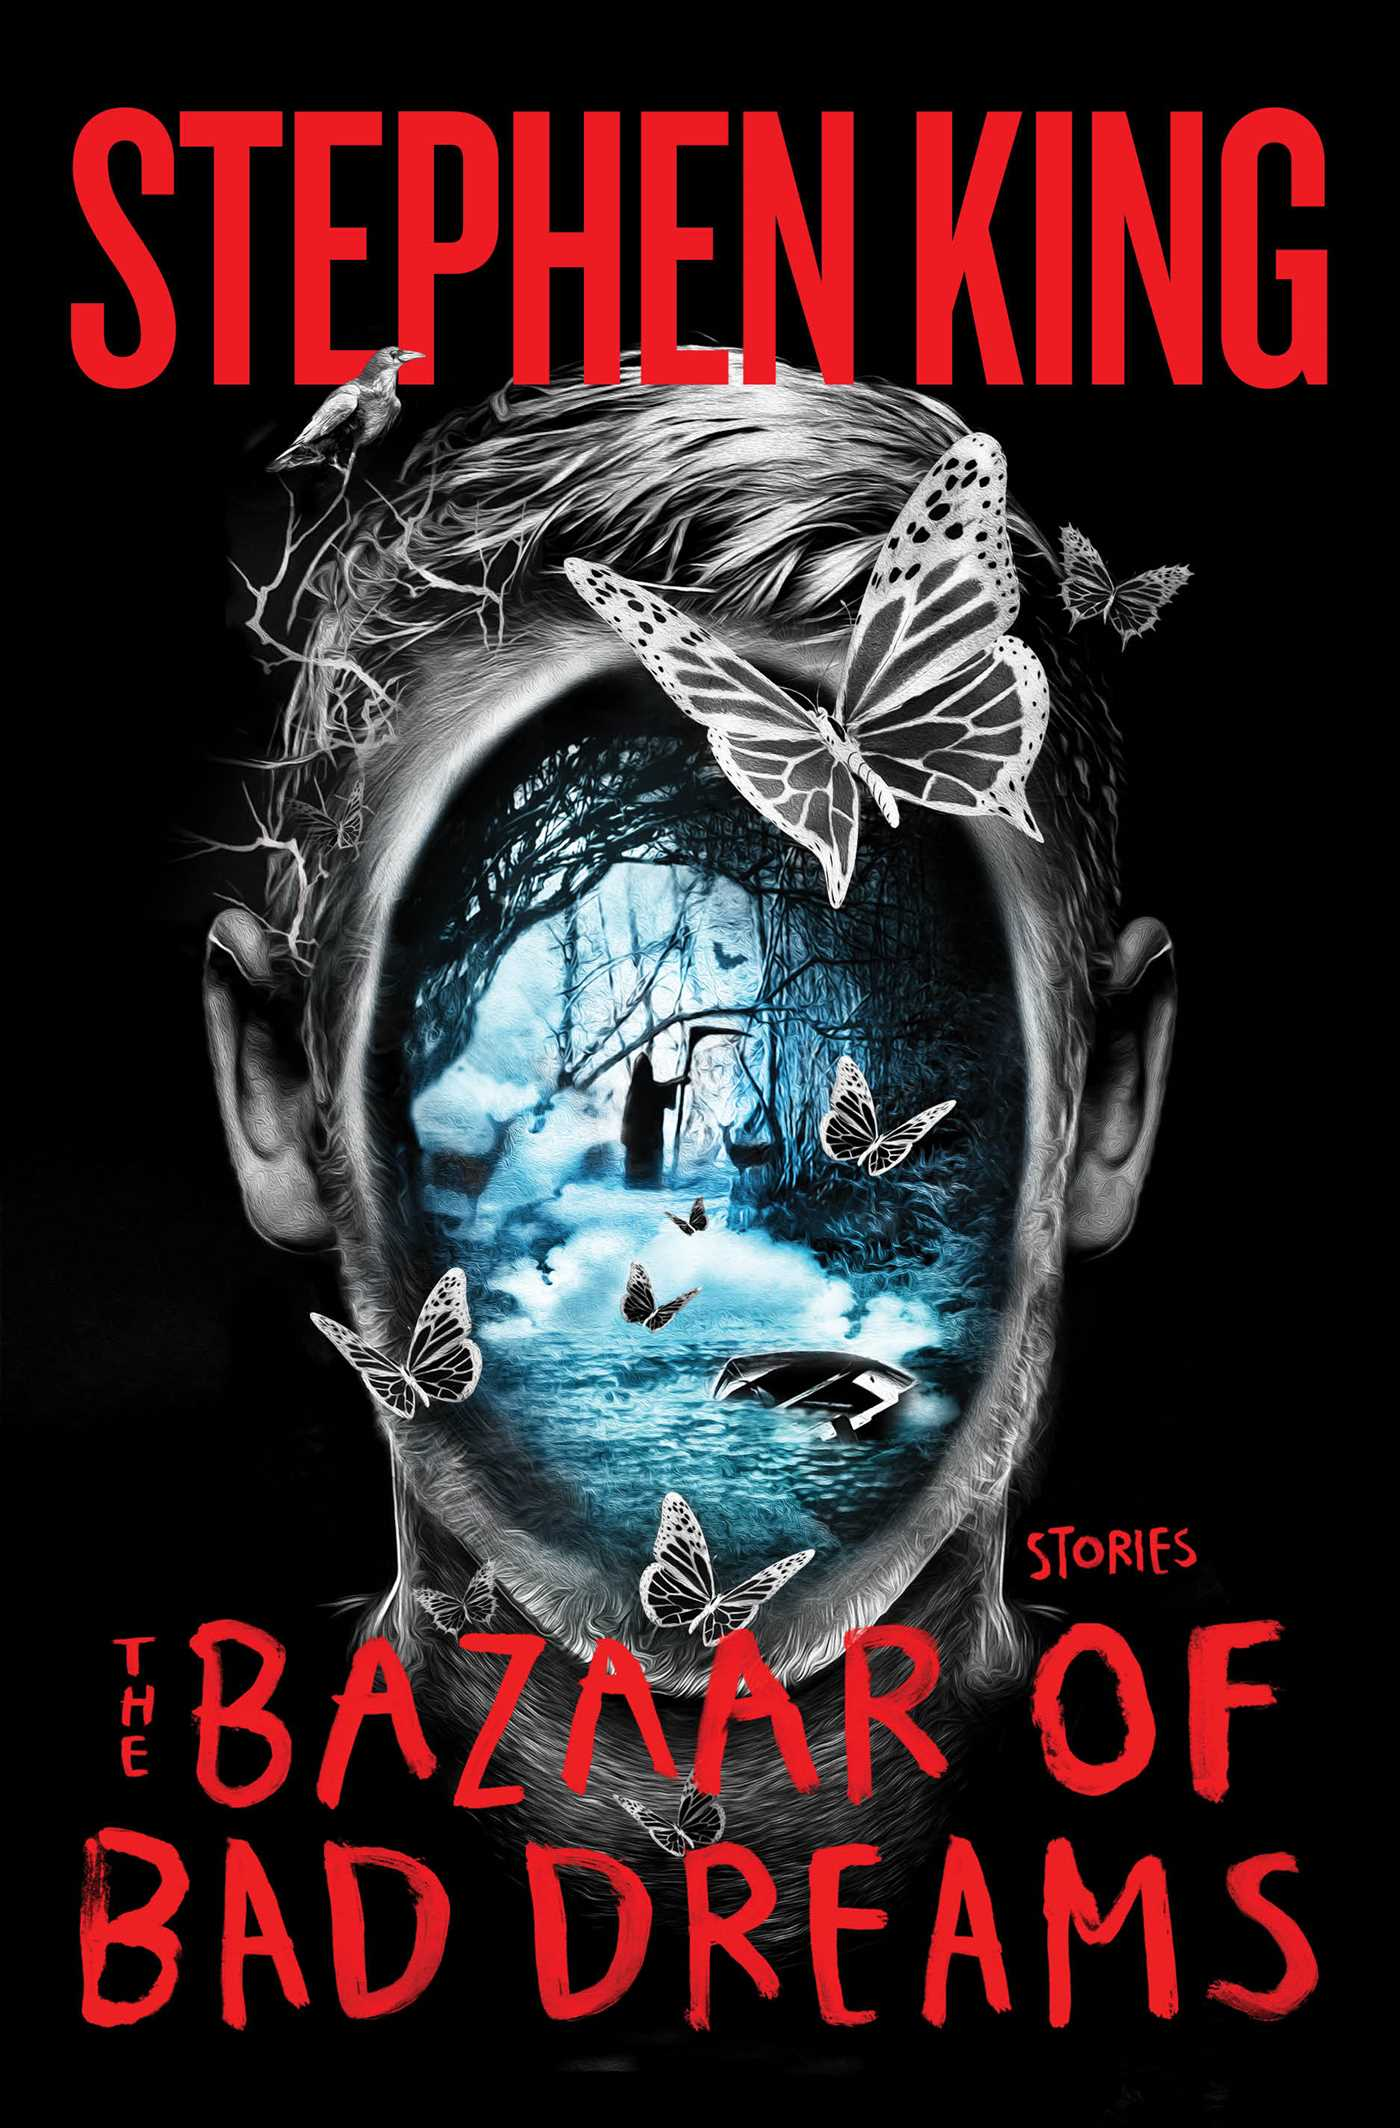 The bazaar of bad dreams 9781501111679 hr